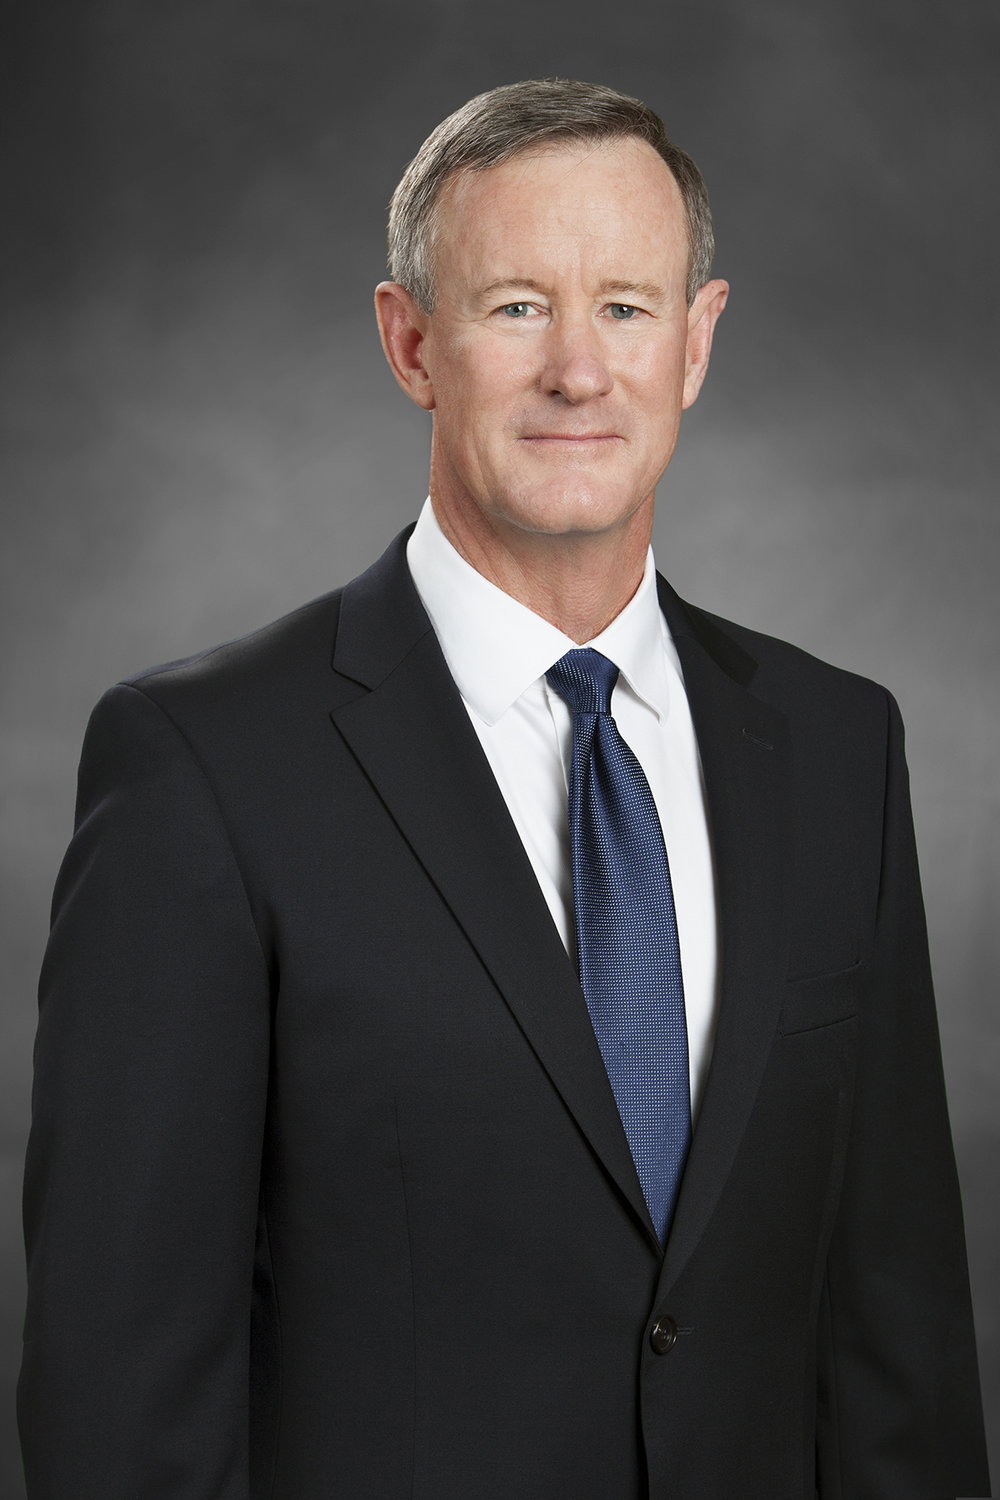 McRaven_William_PROMOPIC.jpg